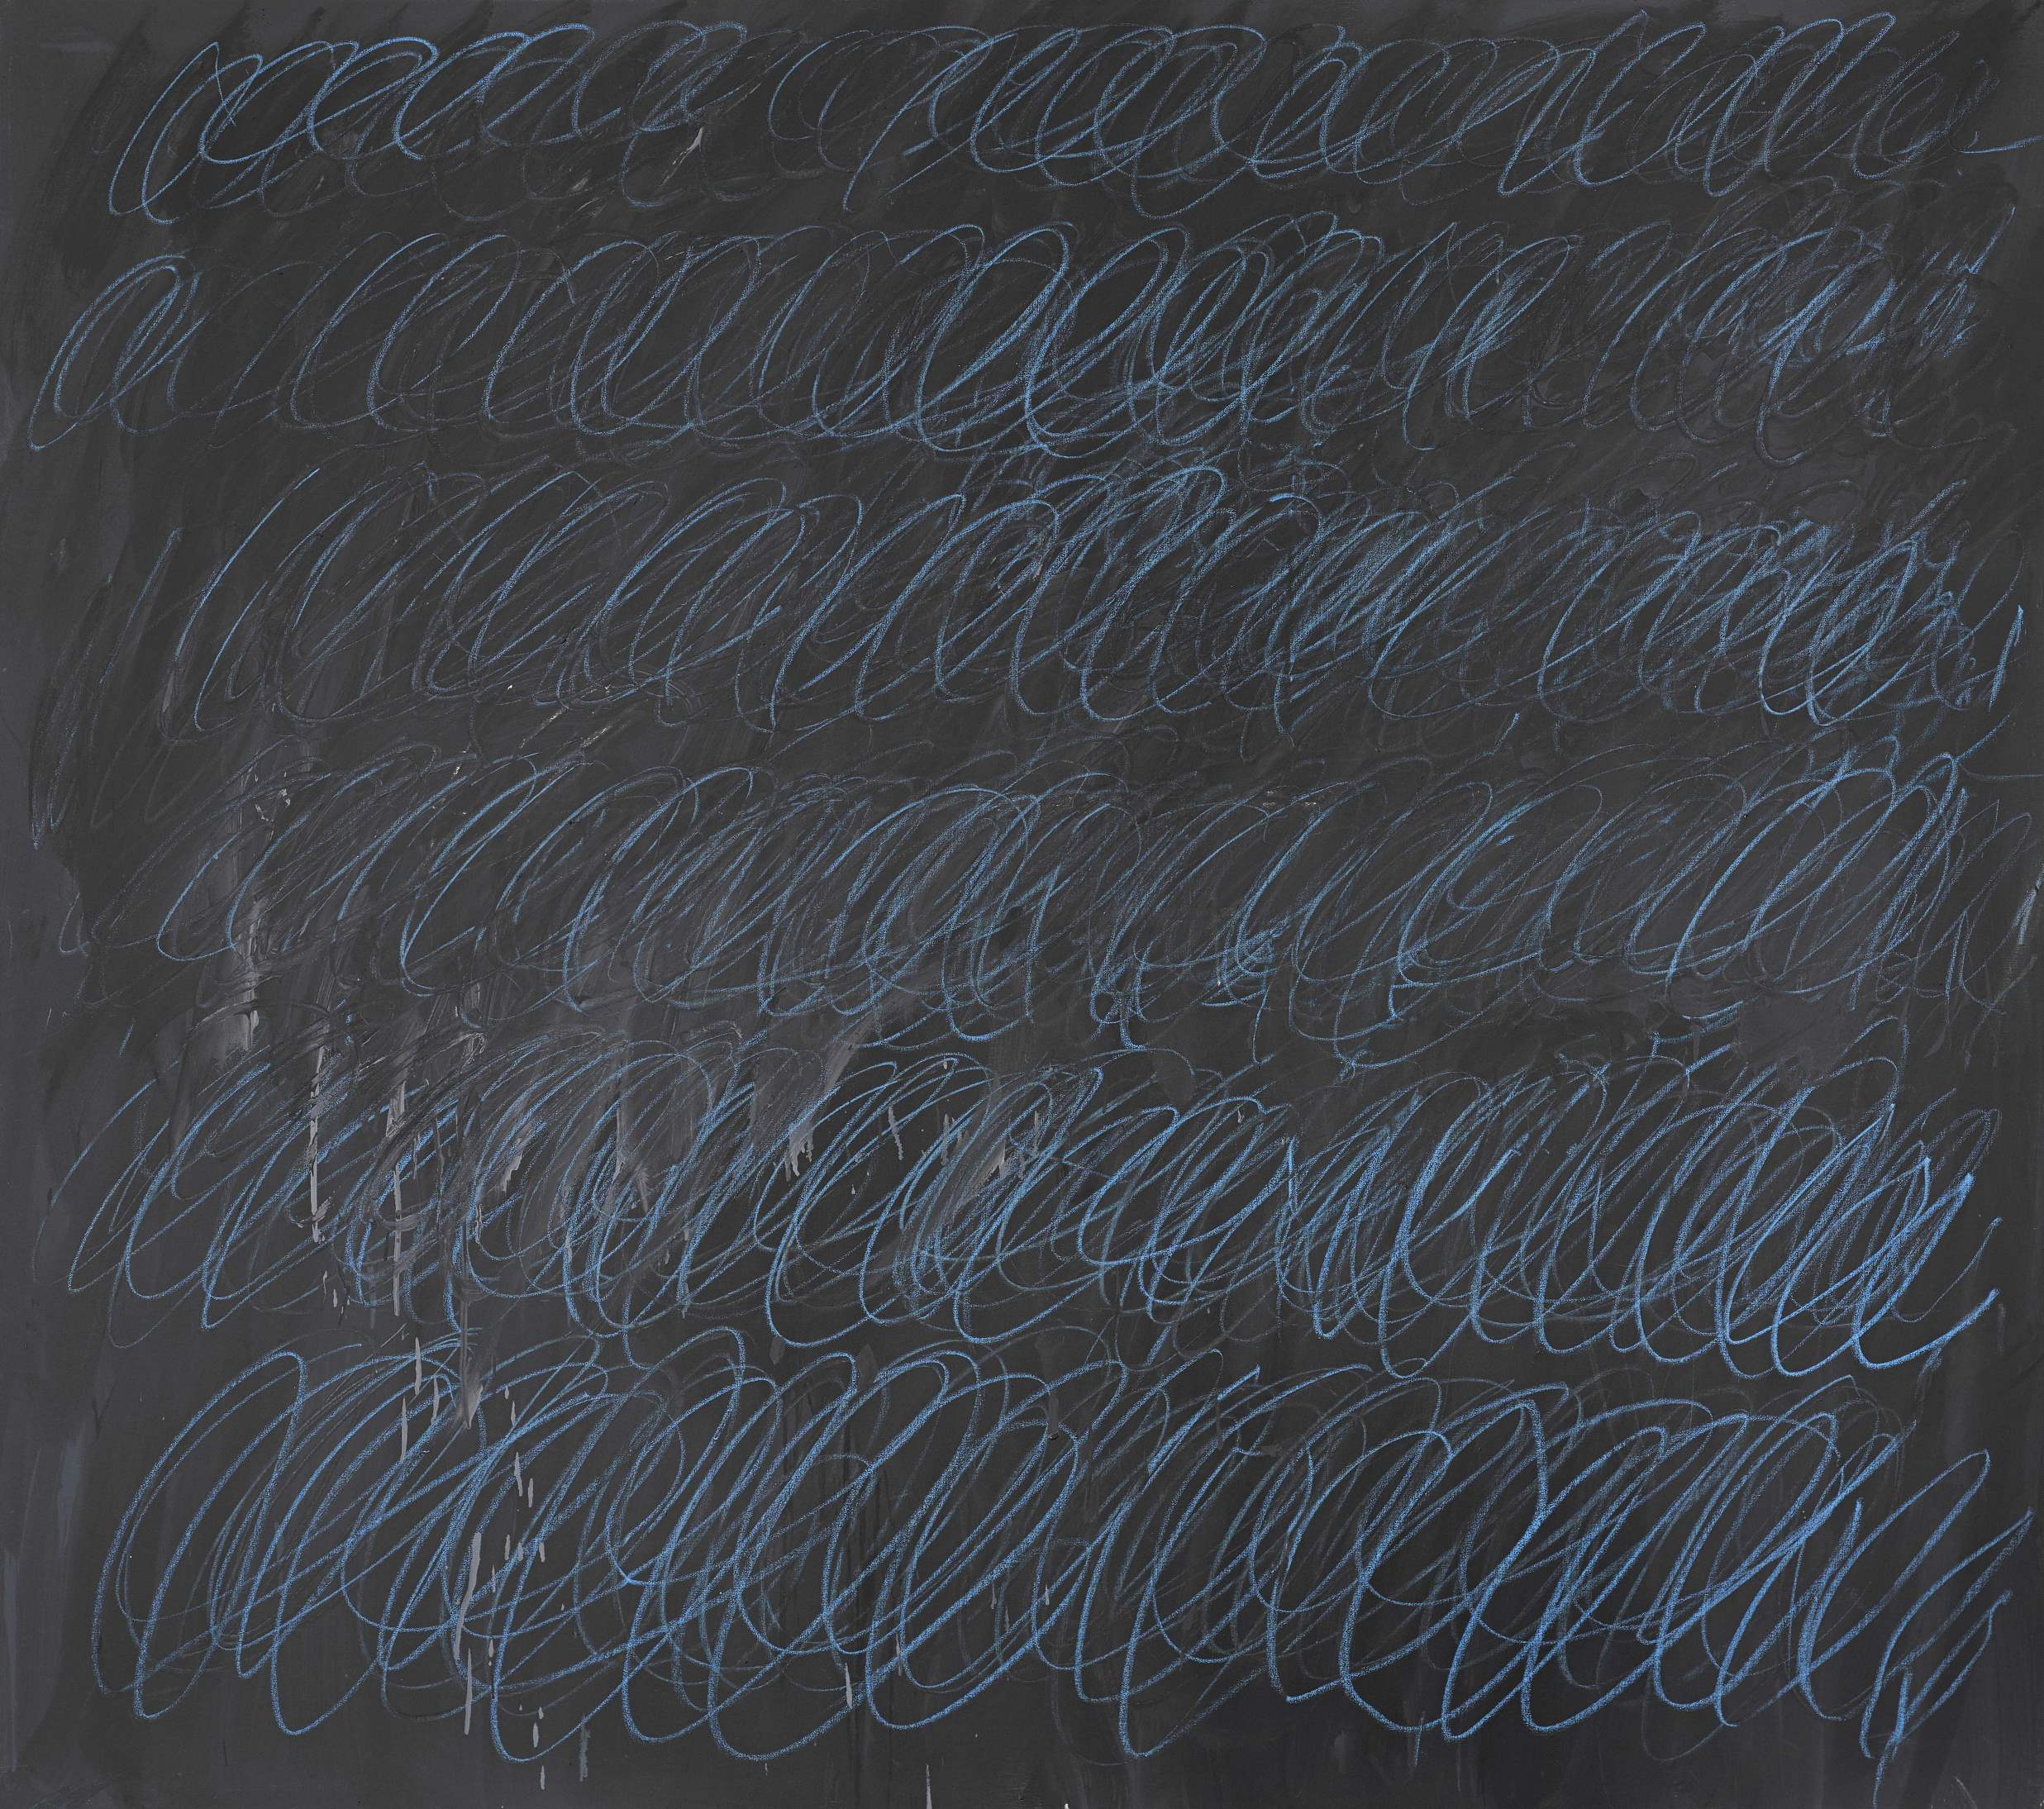 Cy Twombly's Untitled (New York City).